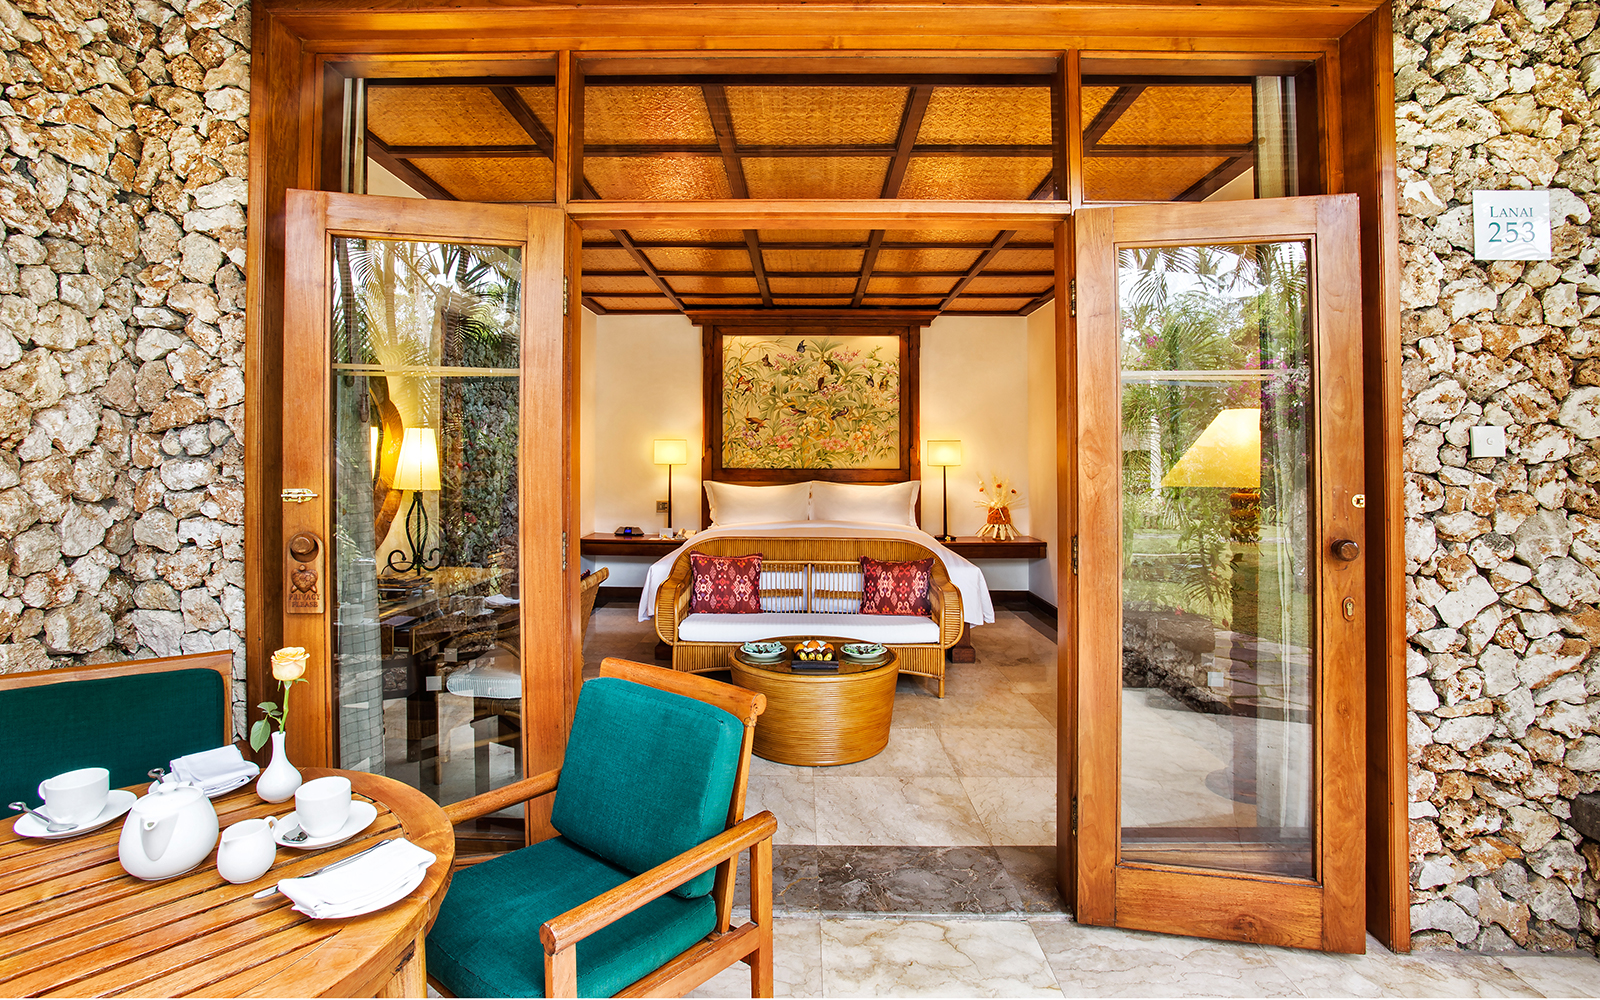 No. 4: The Oberoi, Bali